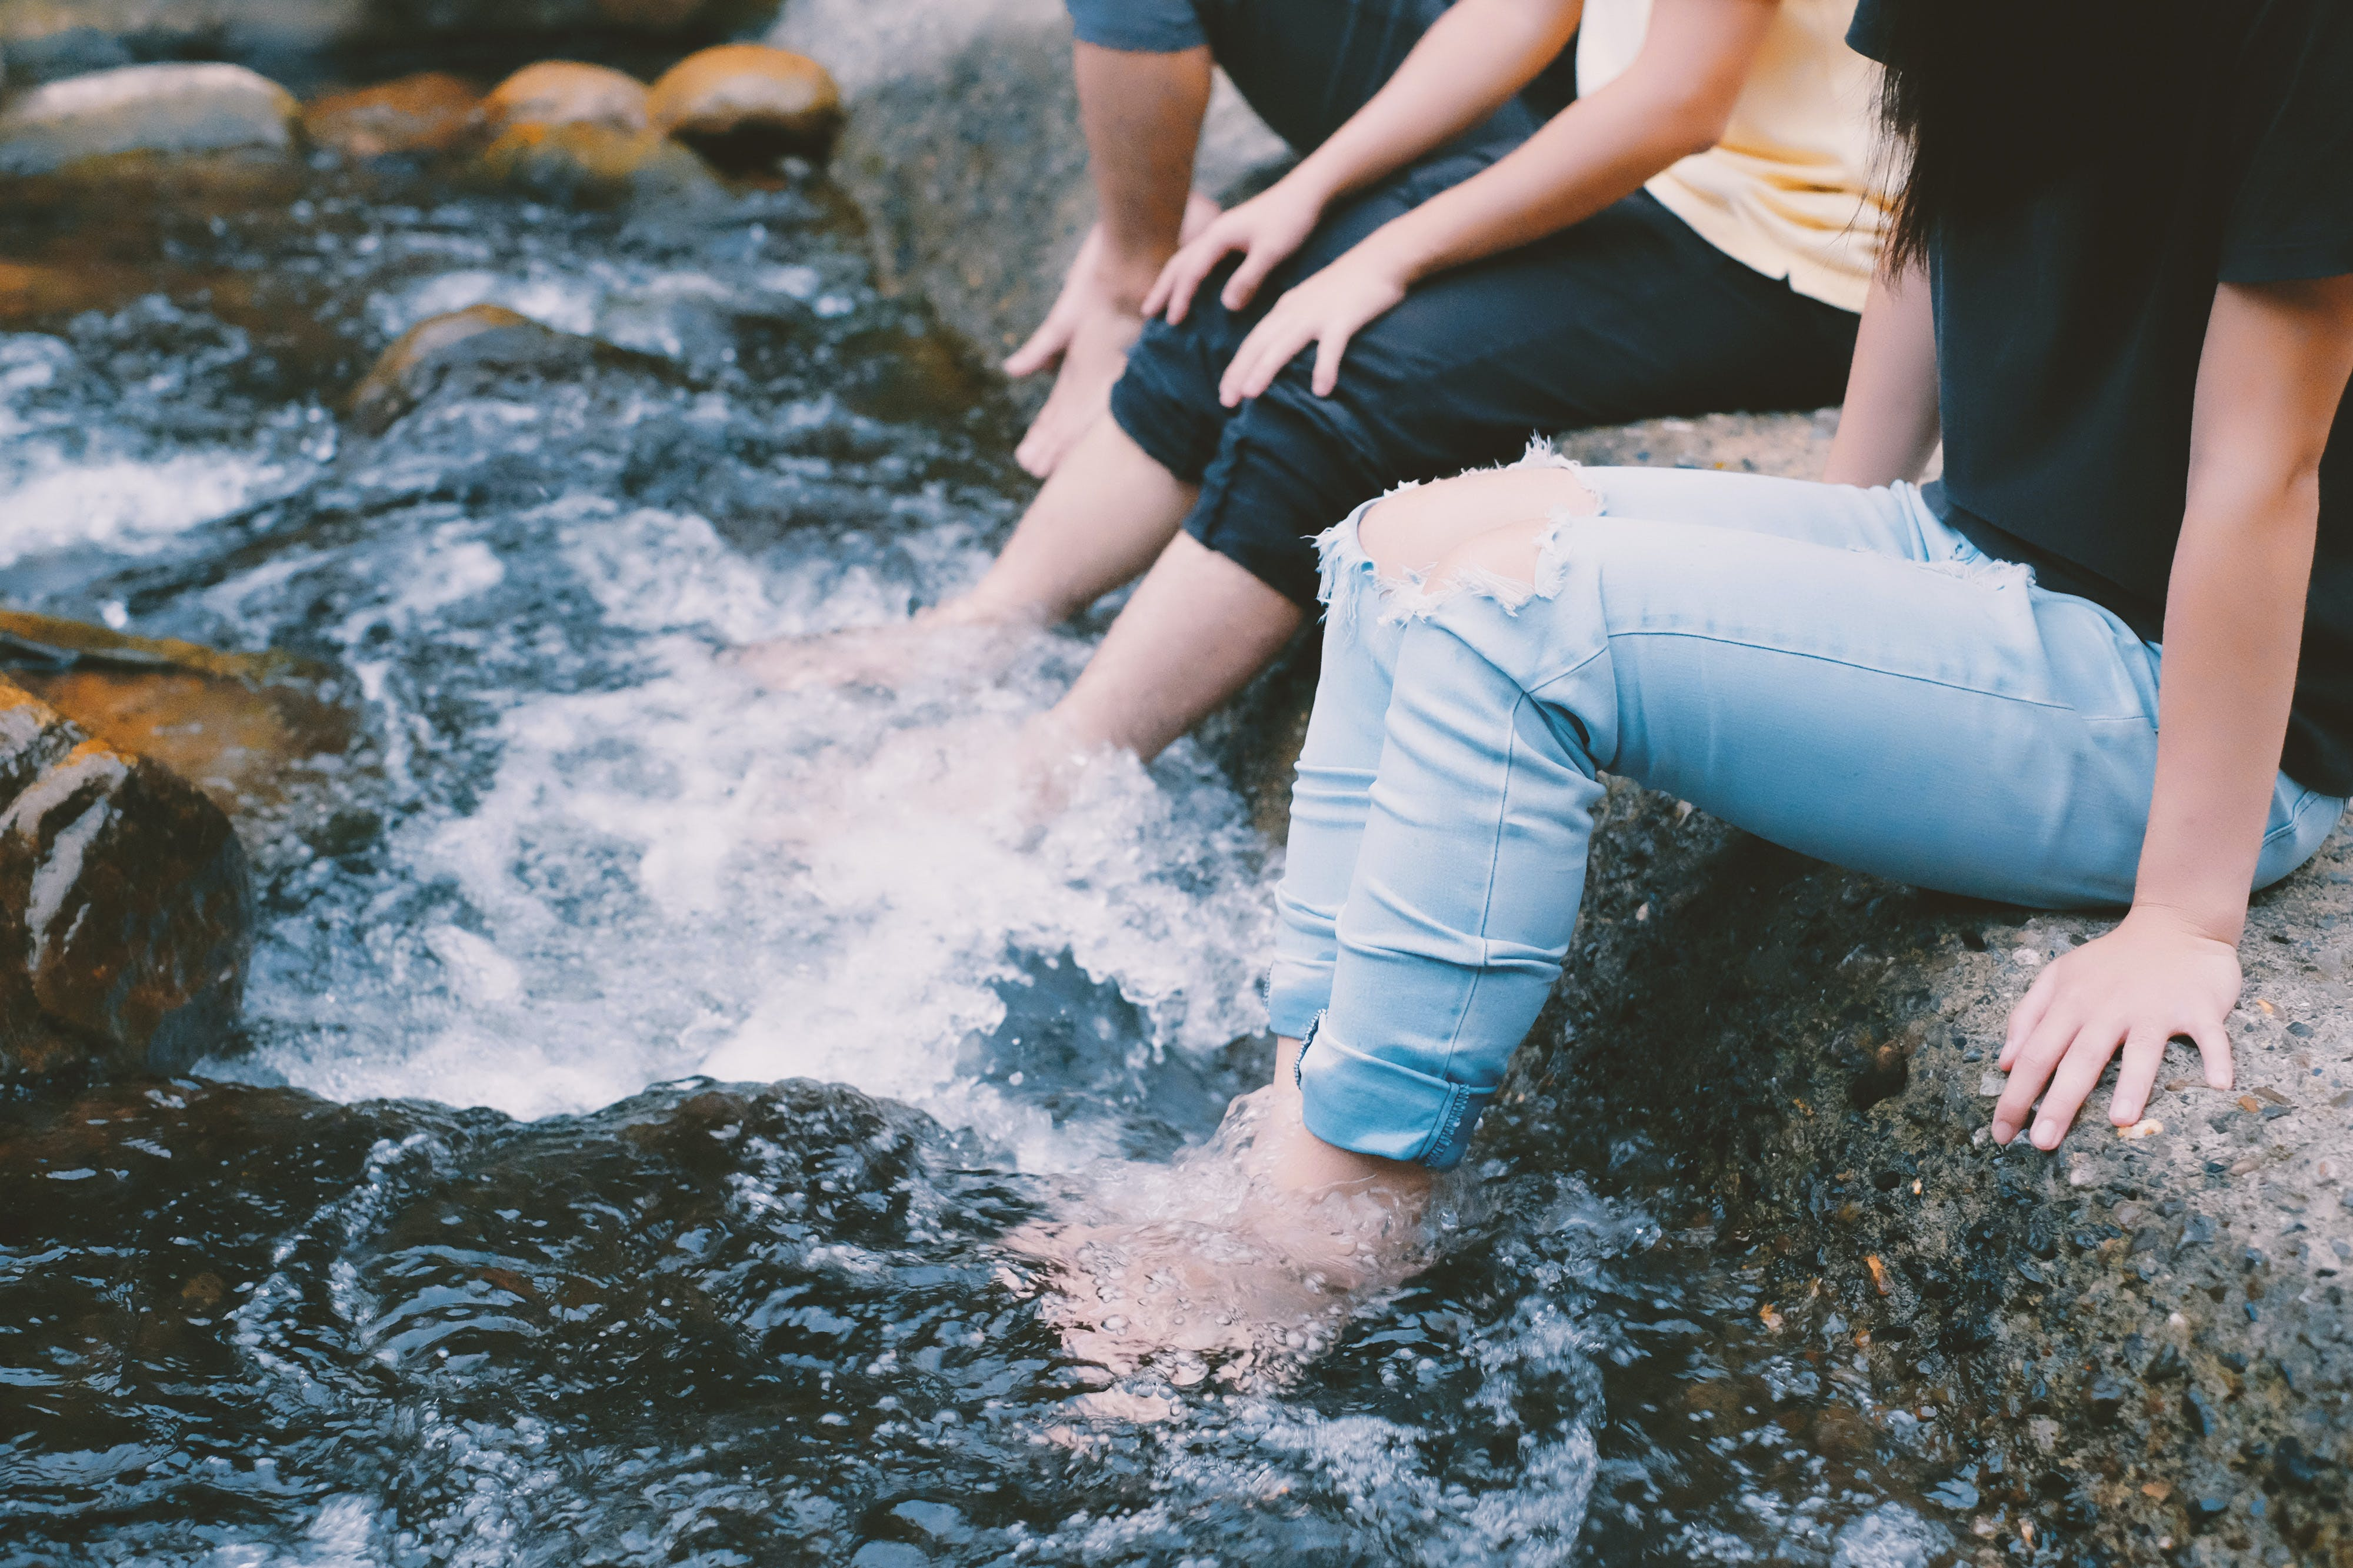 People In Jeans With Feet In Water